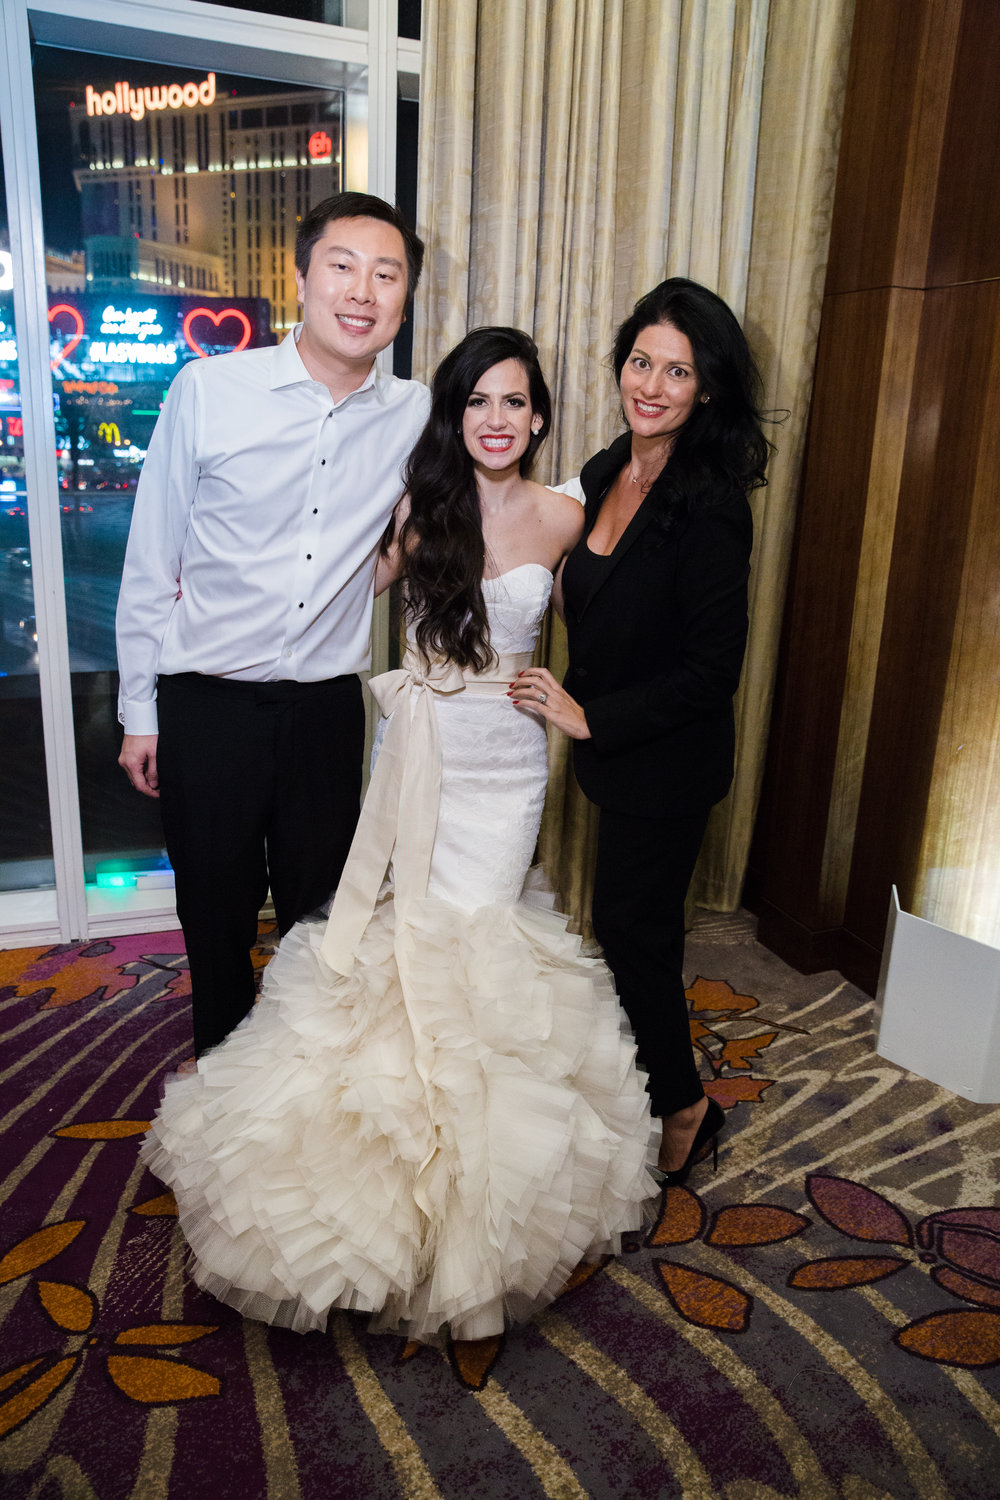 Las Vegas Wedding Planner Andrea Eppolito with bride and Groom.  Luxury wedding at the Mandarin Oriental with a color scheme of white, blush, and pops of wine red produced by Las Vegas Wedding Planner Andrea Eppolito with photos by Stephen Salazar Photography.